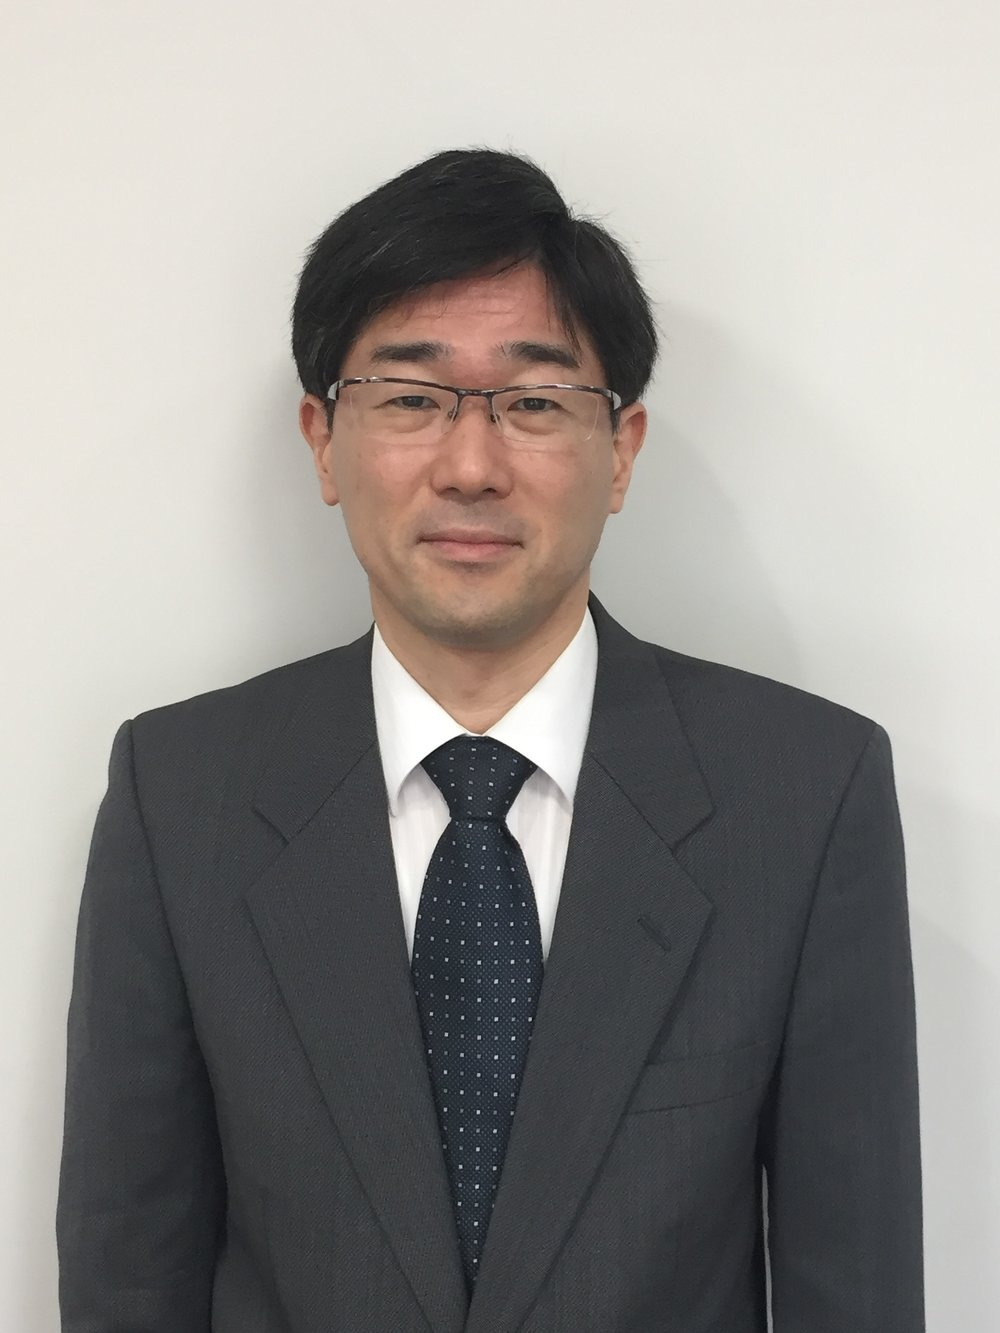 Masahiro Atarashi - Director and General Manager, home electrical appliances, The Japan Electrical Manufacturers' Association (JEMA)